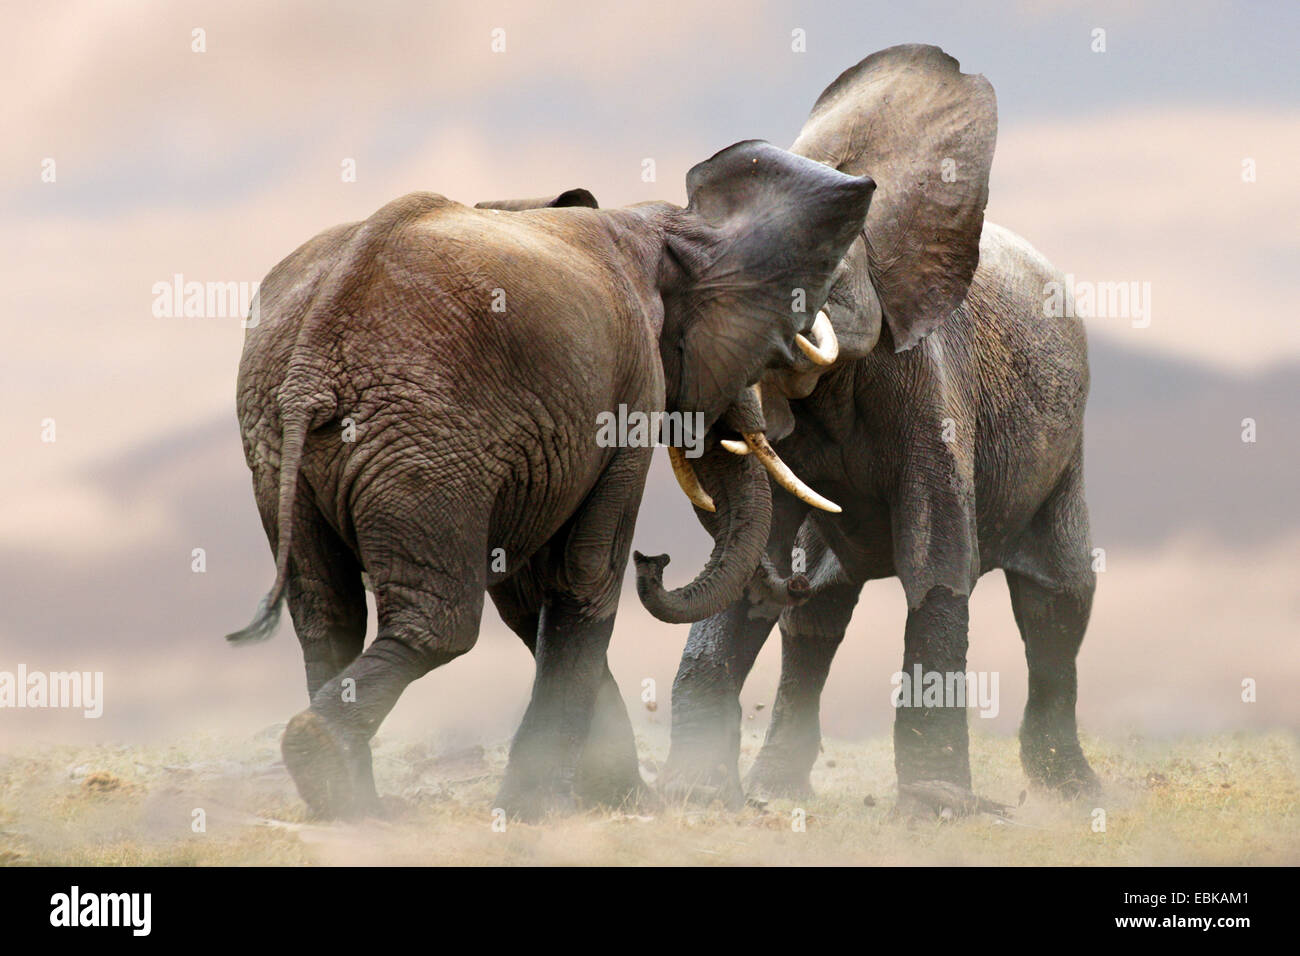 African elephant (Loxodonta africana), two elephants scuffling together, Kenya, Amboseli National Park - Stock Image